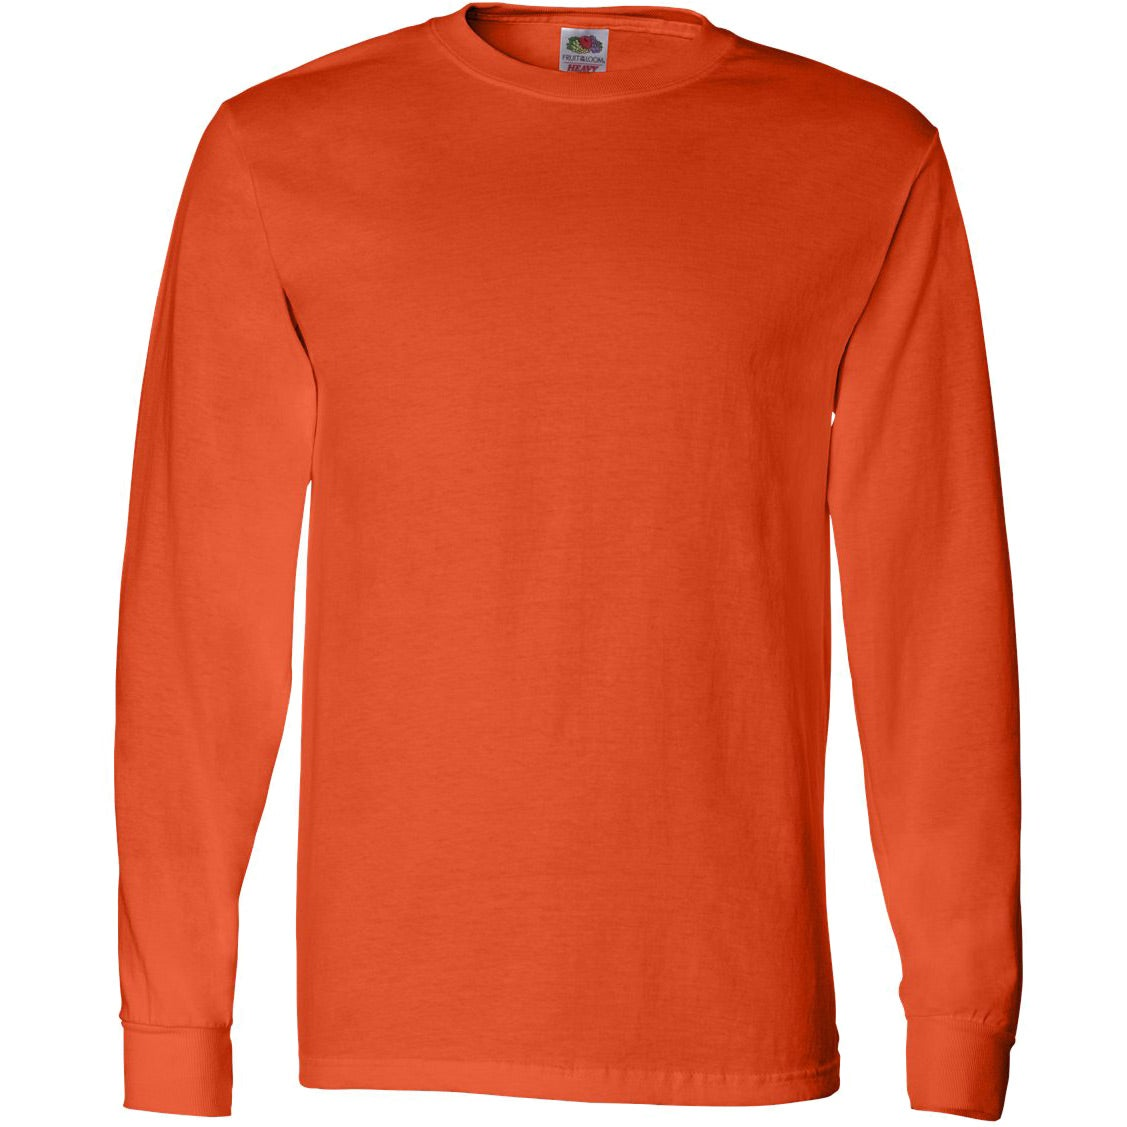 Fruit of the loom long sleeve cotton t shirt colors for Personalized long sleeve t shirts